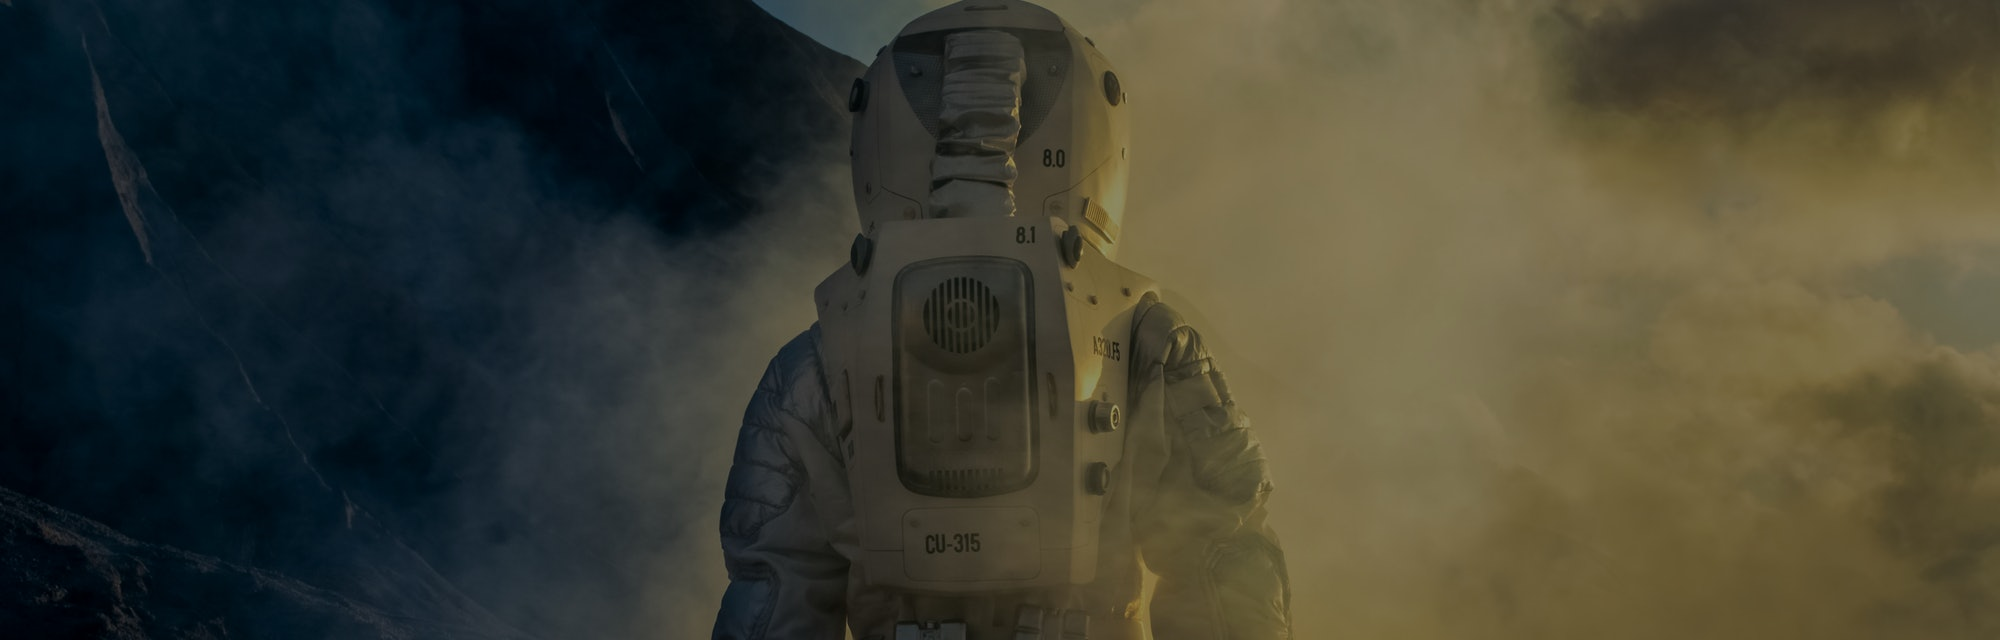 Courageous Astronaut in the Space Suit Explores Mysterious Alien Planet Covered in Mist. Adventure. ...